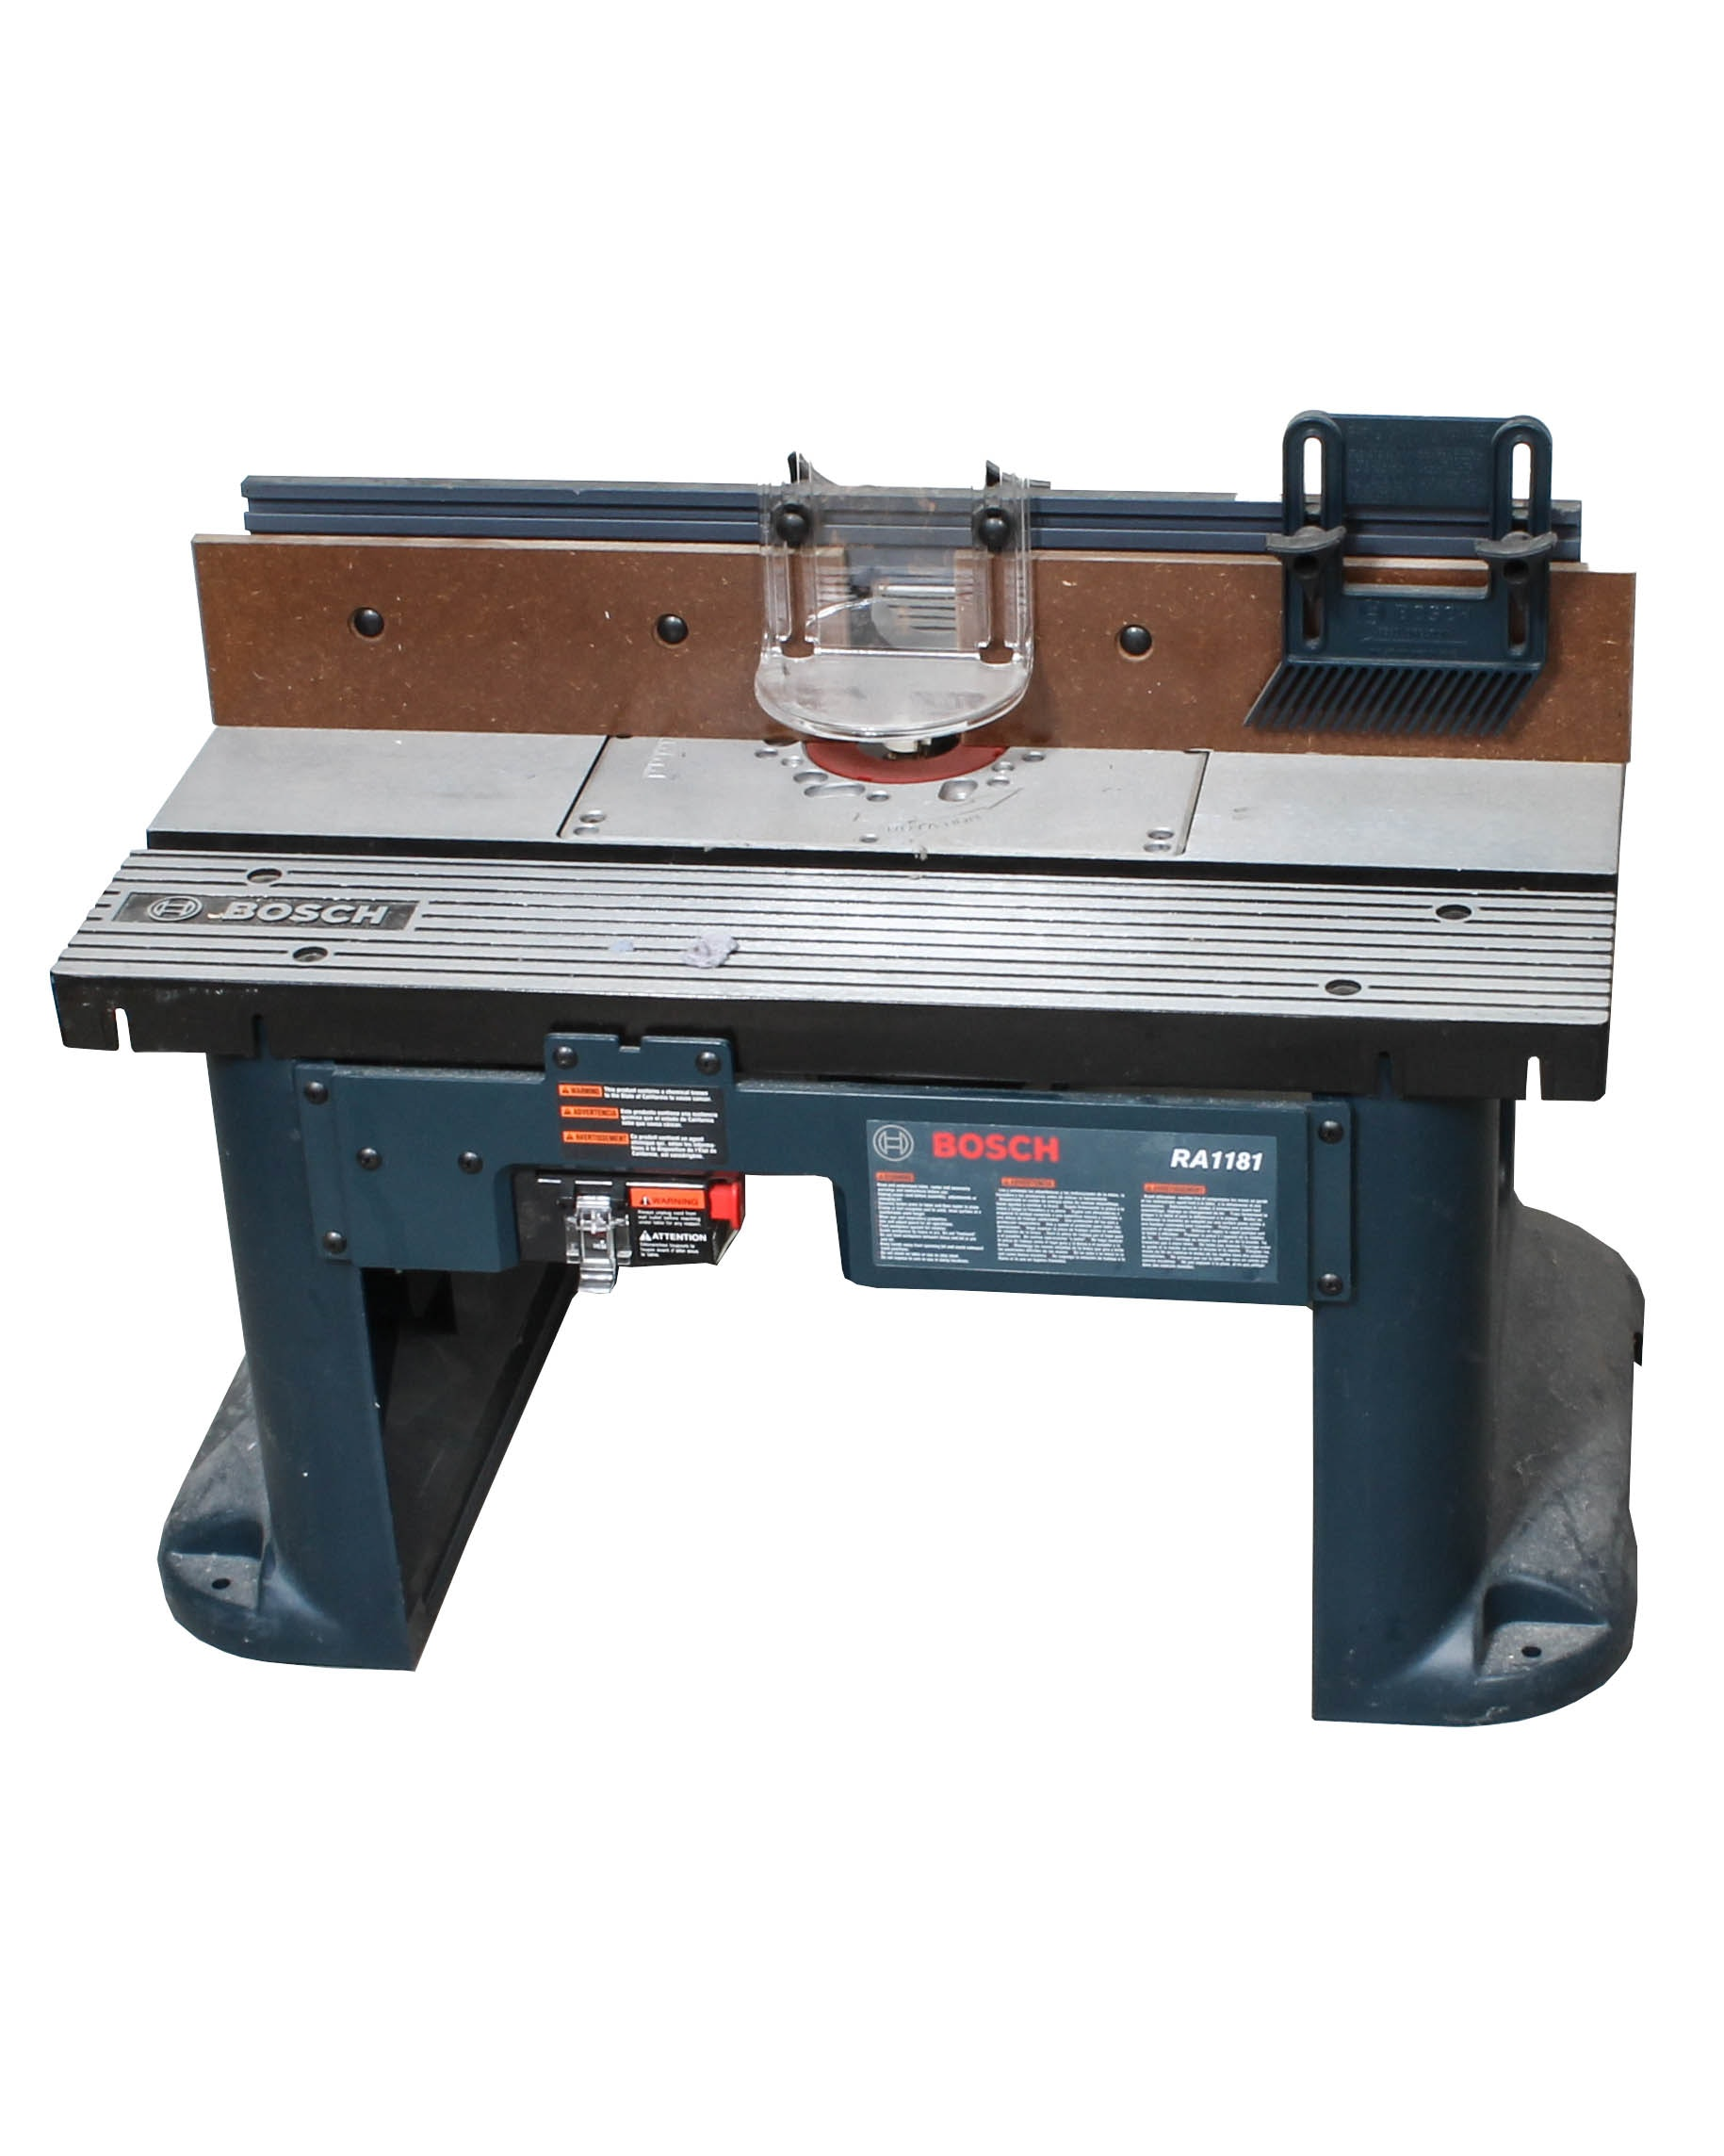 Bosch Woodworking Router Table